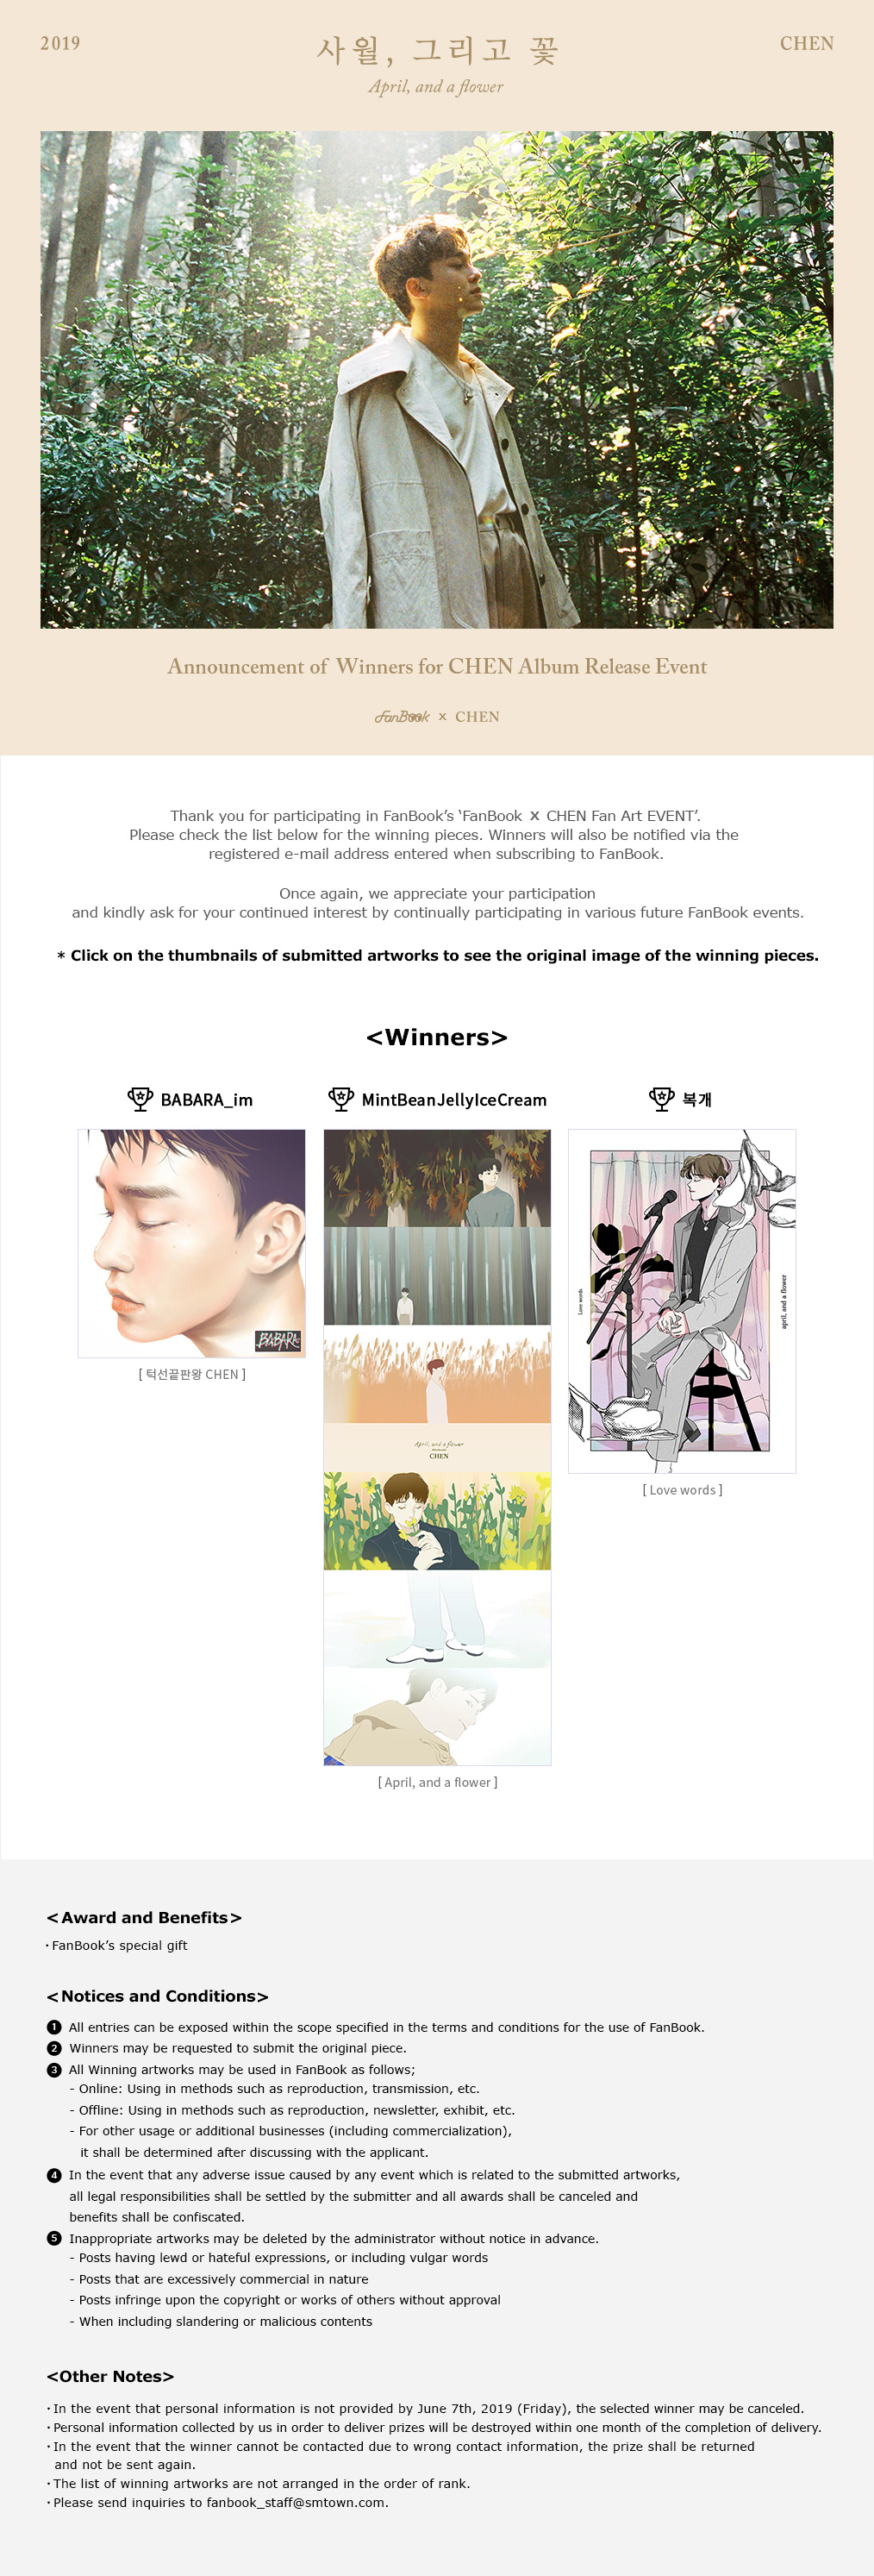 FanBook X CHEN Fan Art Event